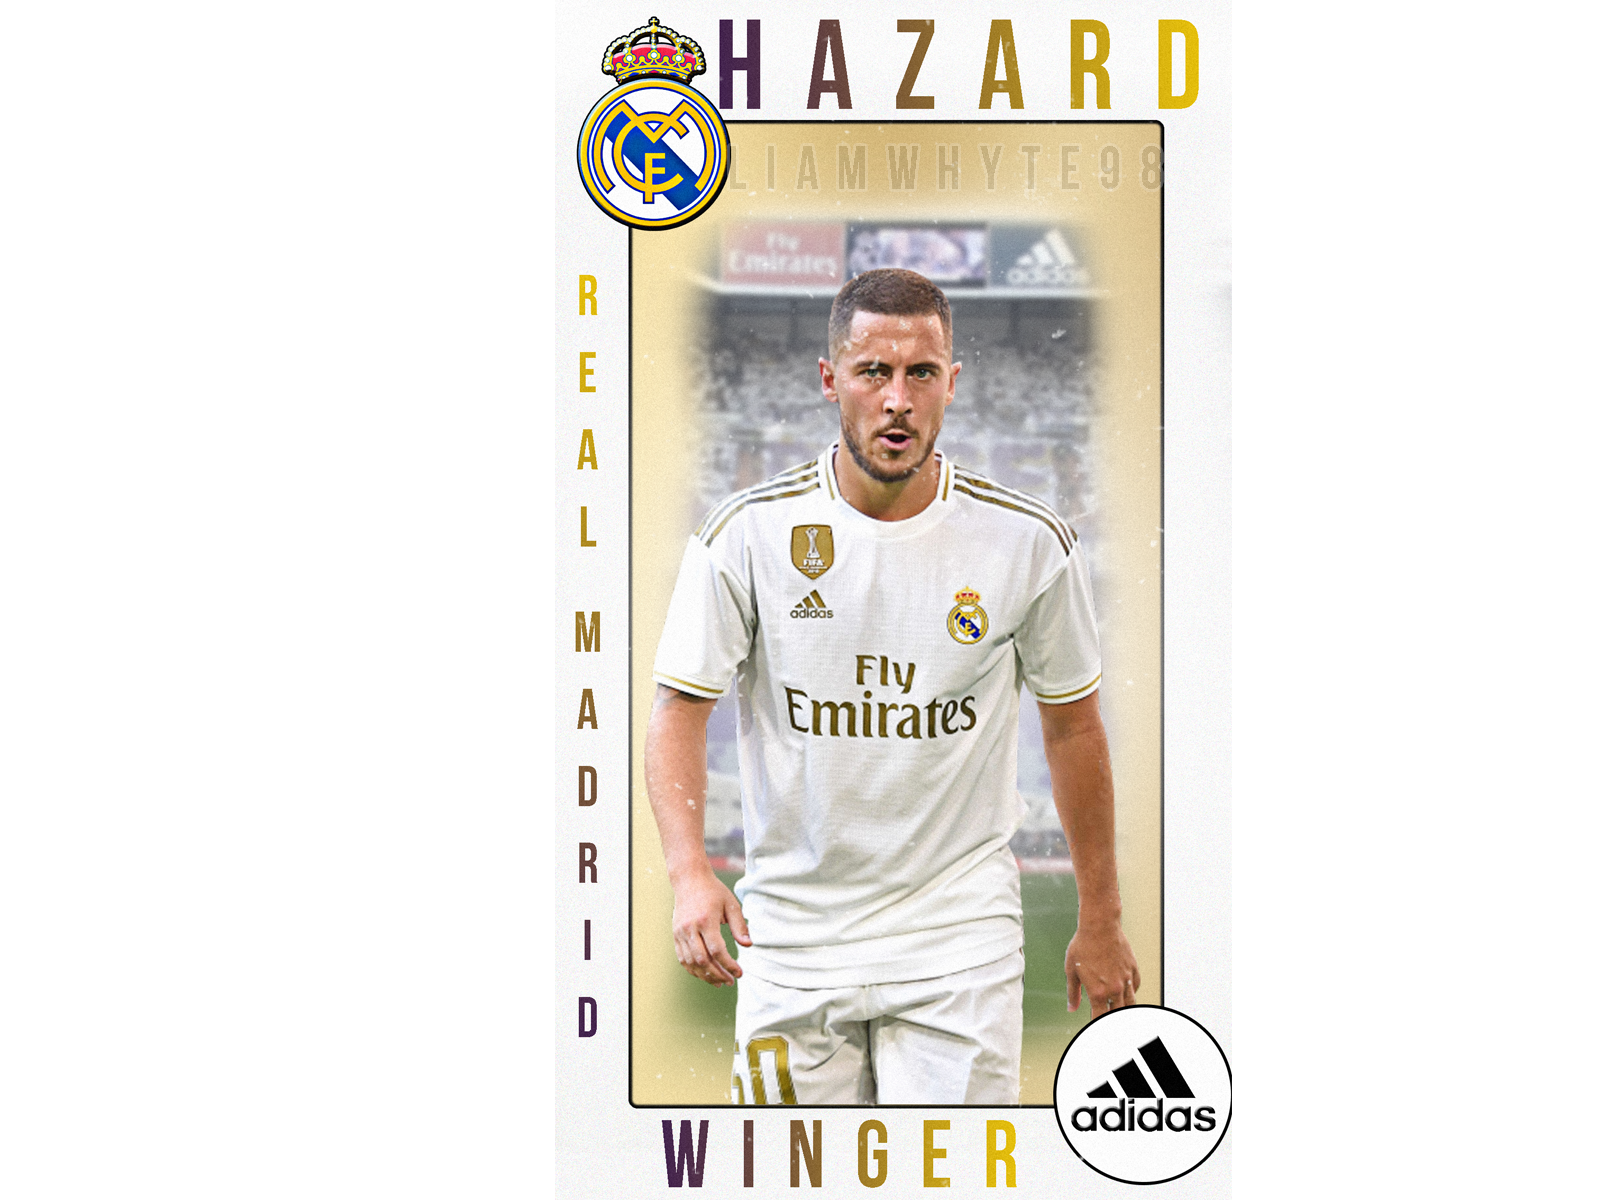 Eden Hazard Real Madrid Player Card Profile Trading Card By Liam Whyte On Dribbble